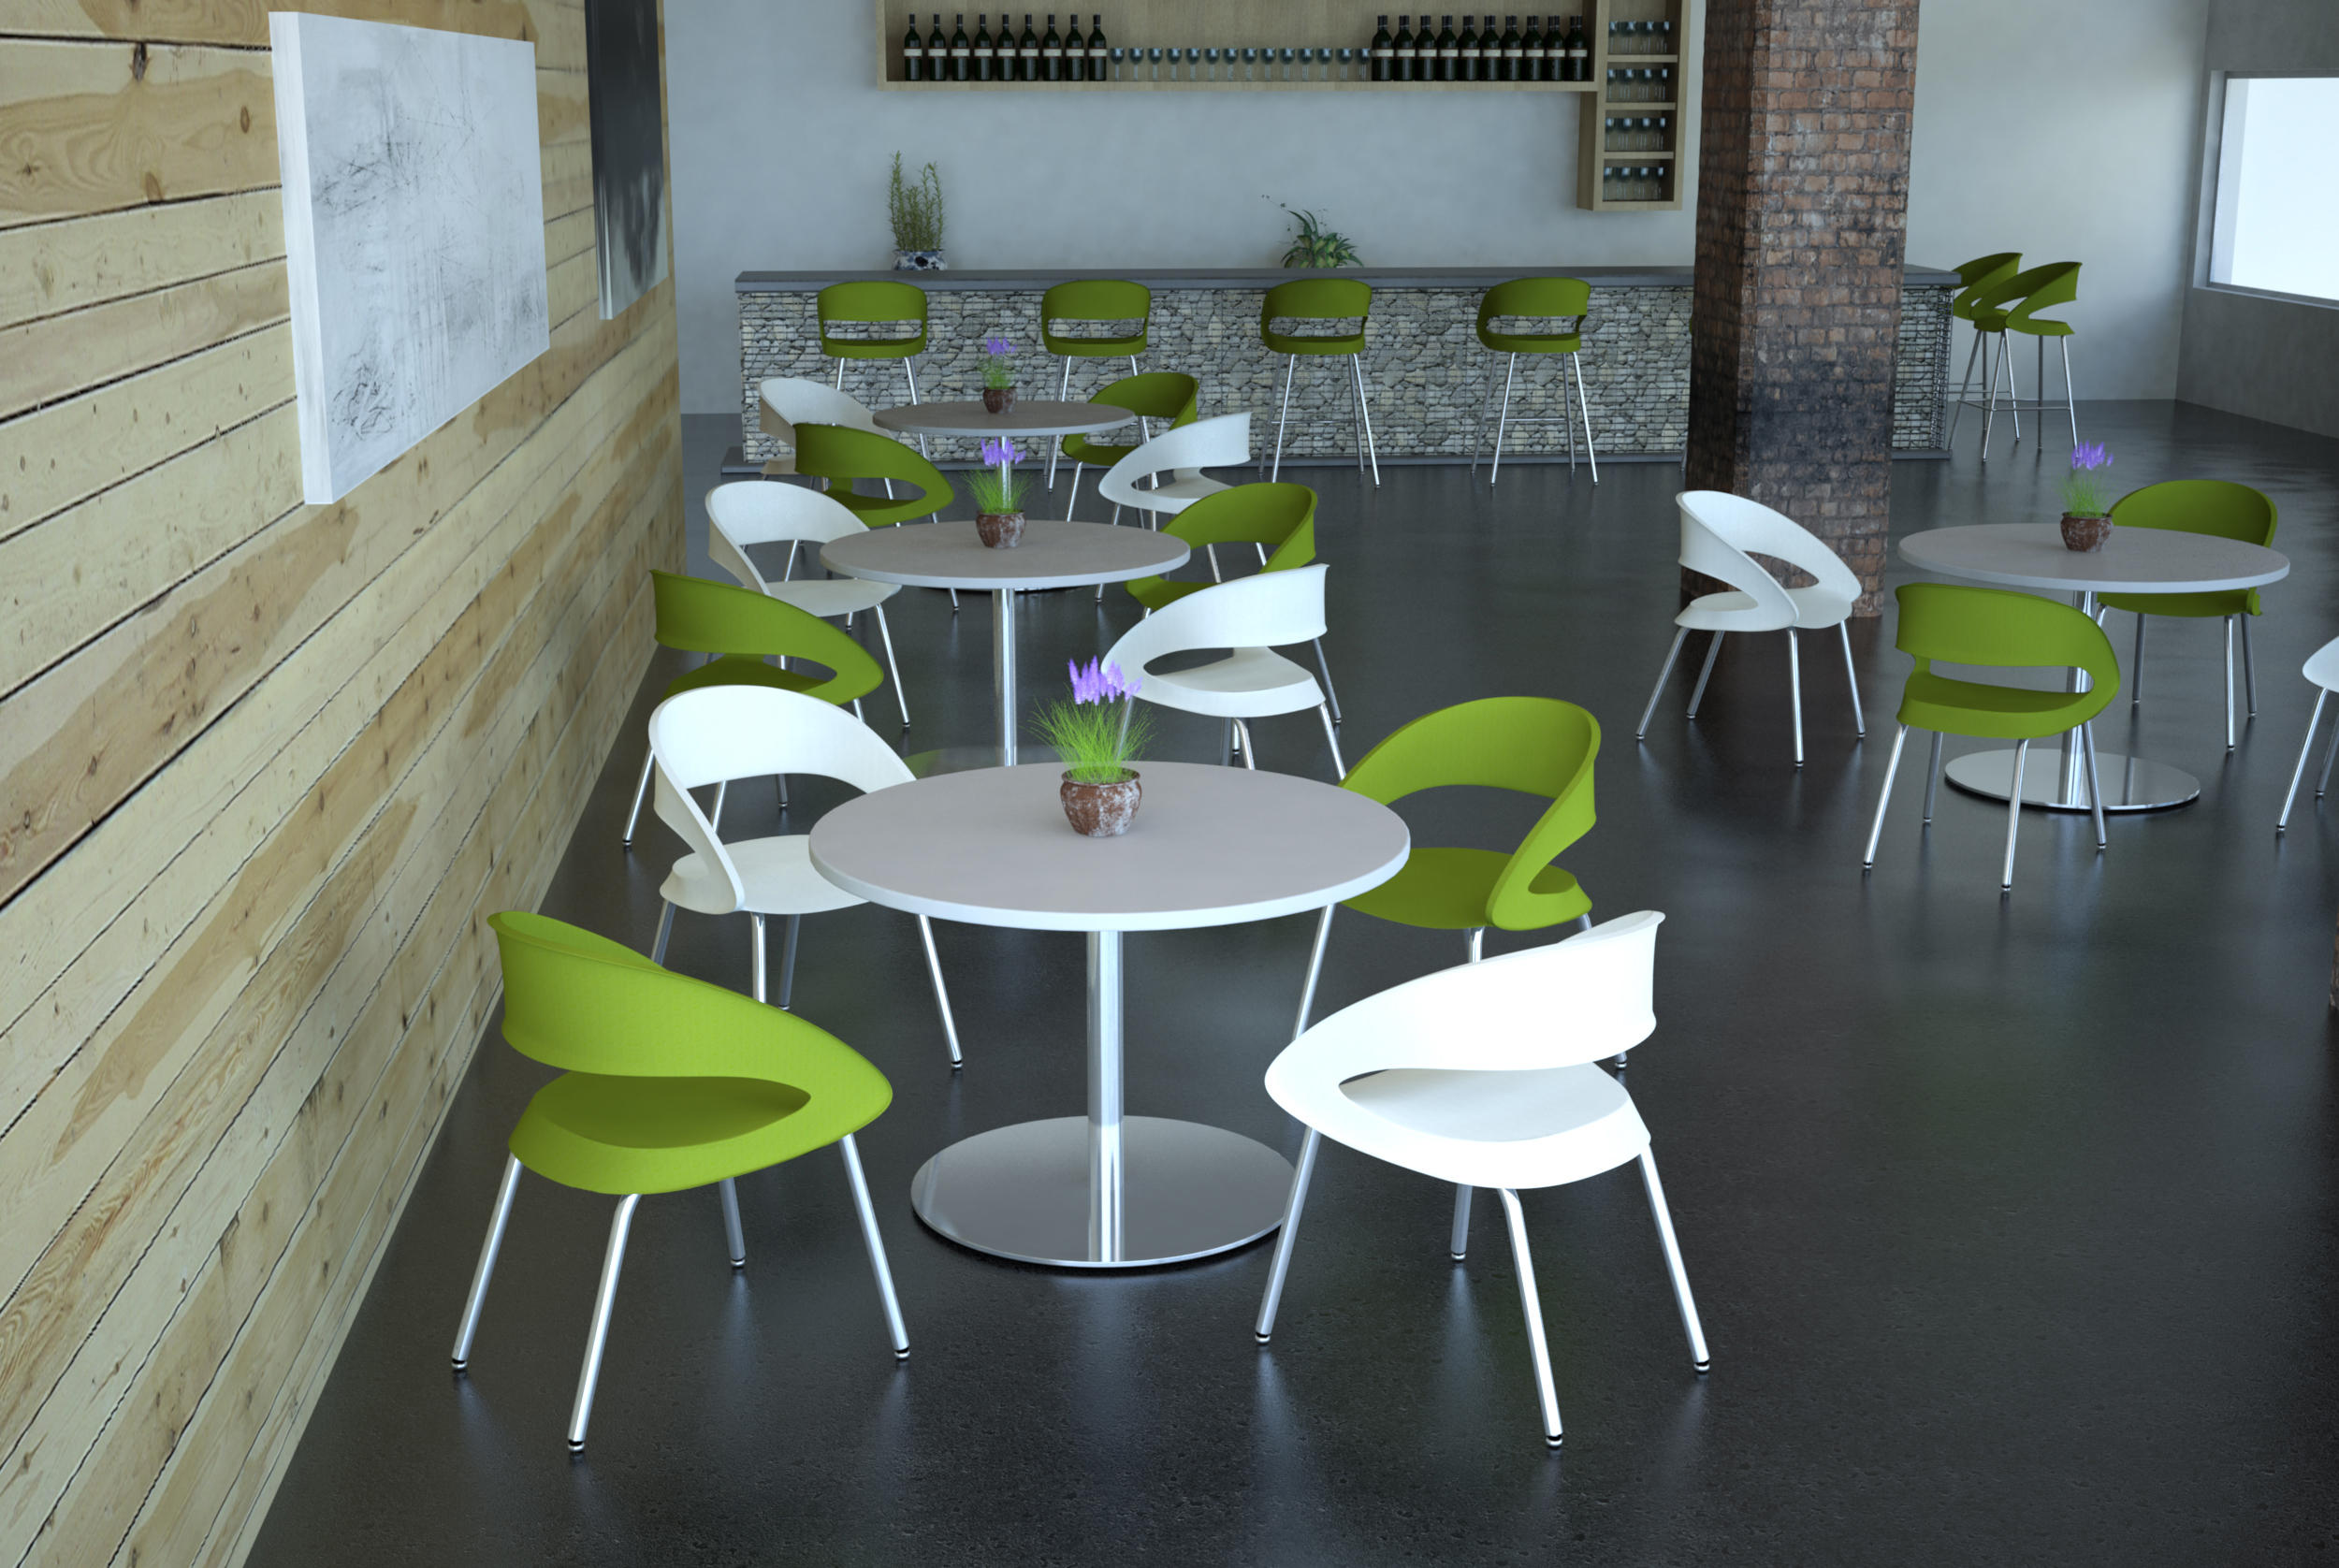 Foray caf chair chairs from erg international architonic for International seating and decor